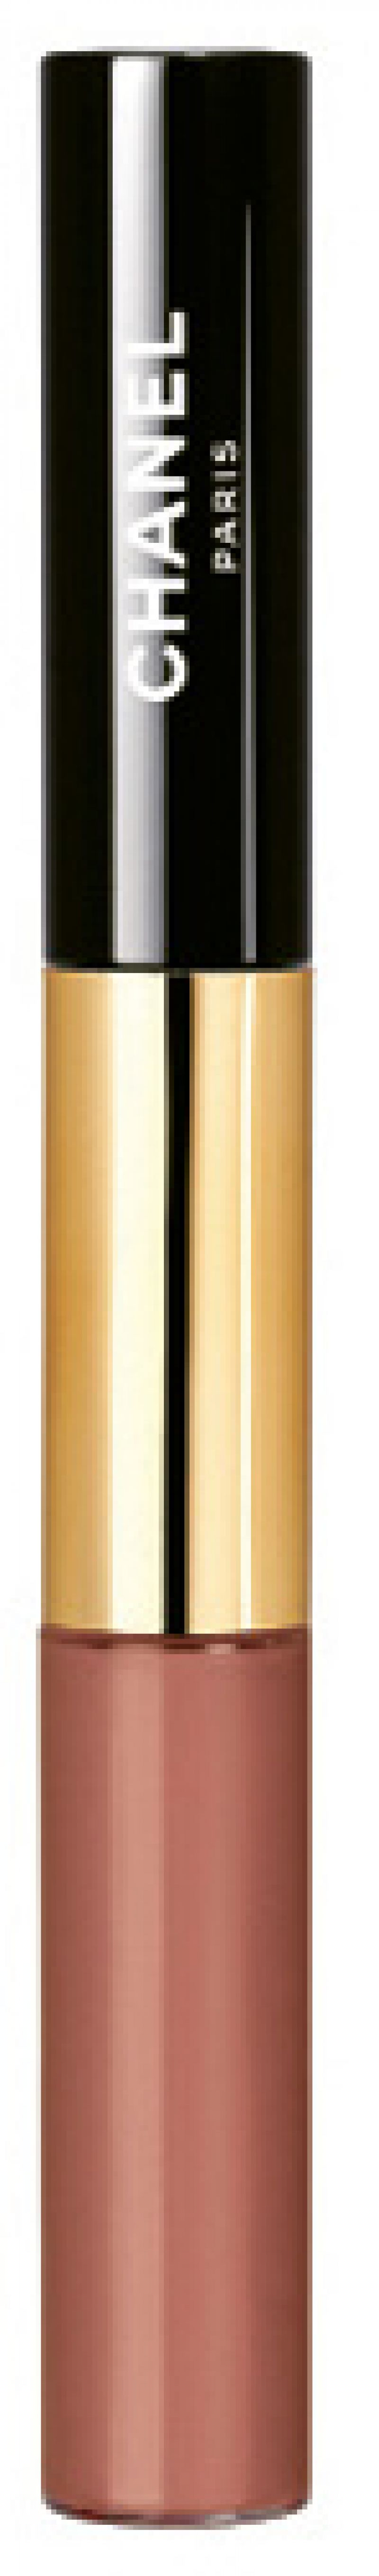 "Chanel's Rouge Double Intensité in ""Tender Beige"""